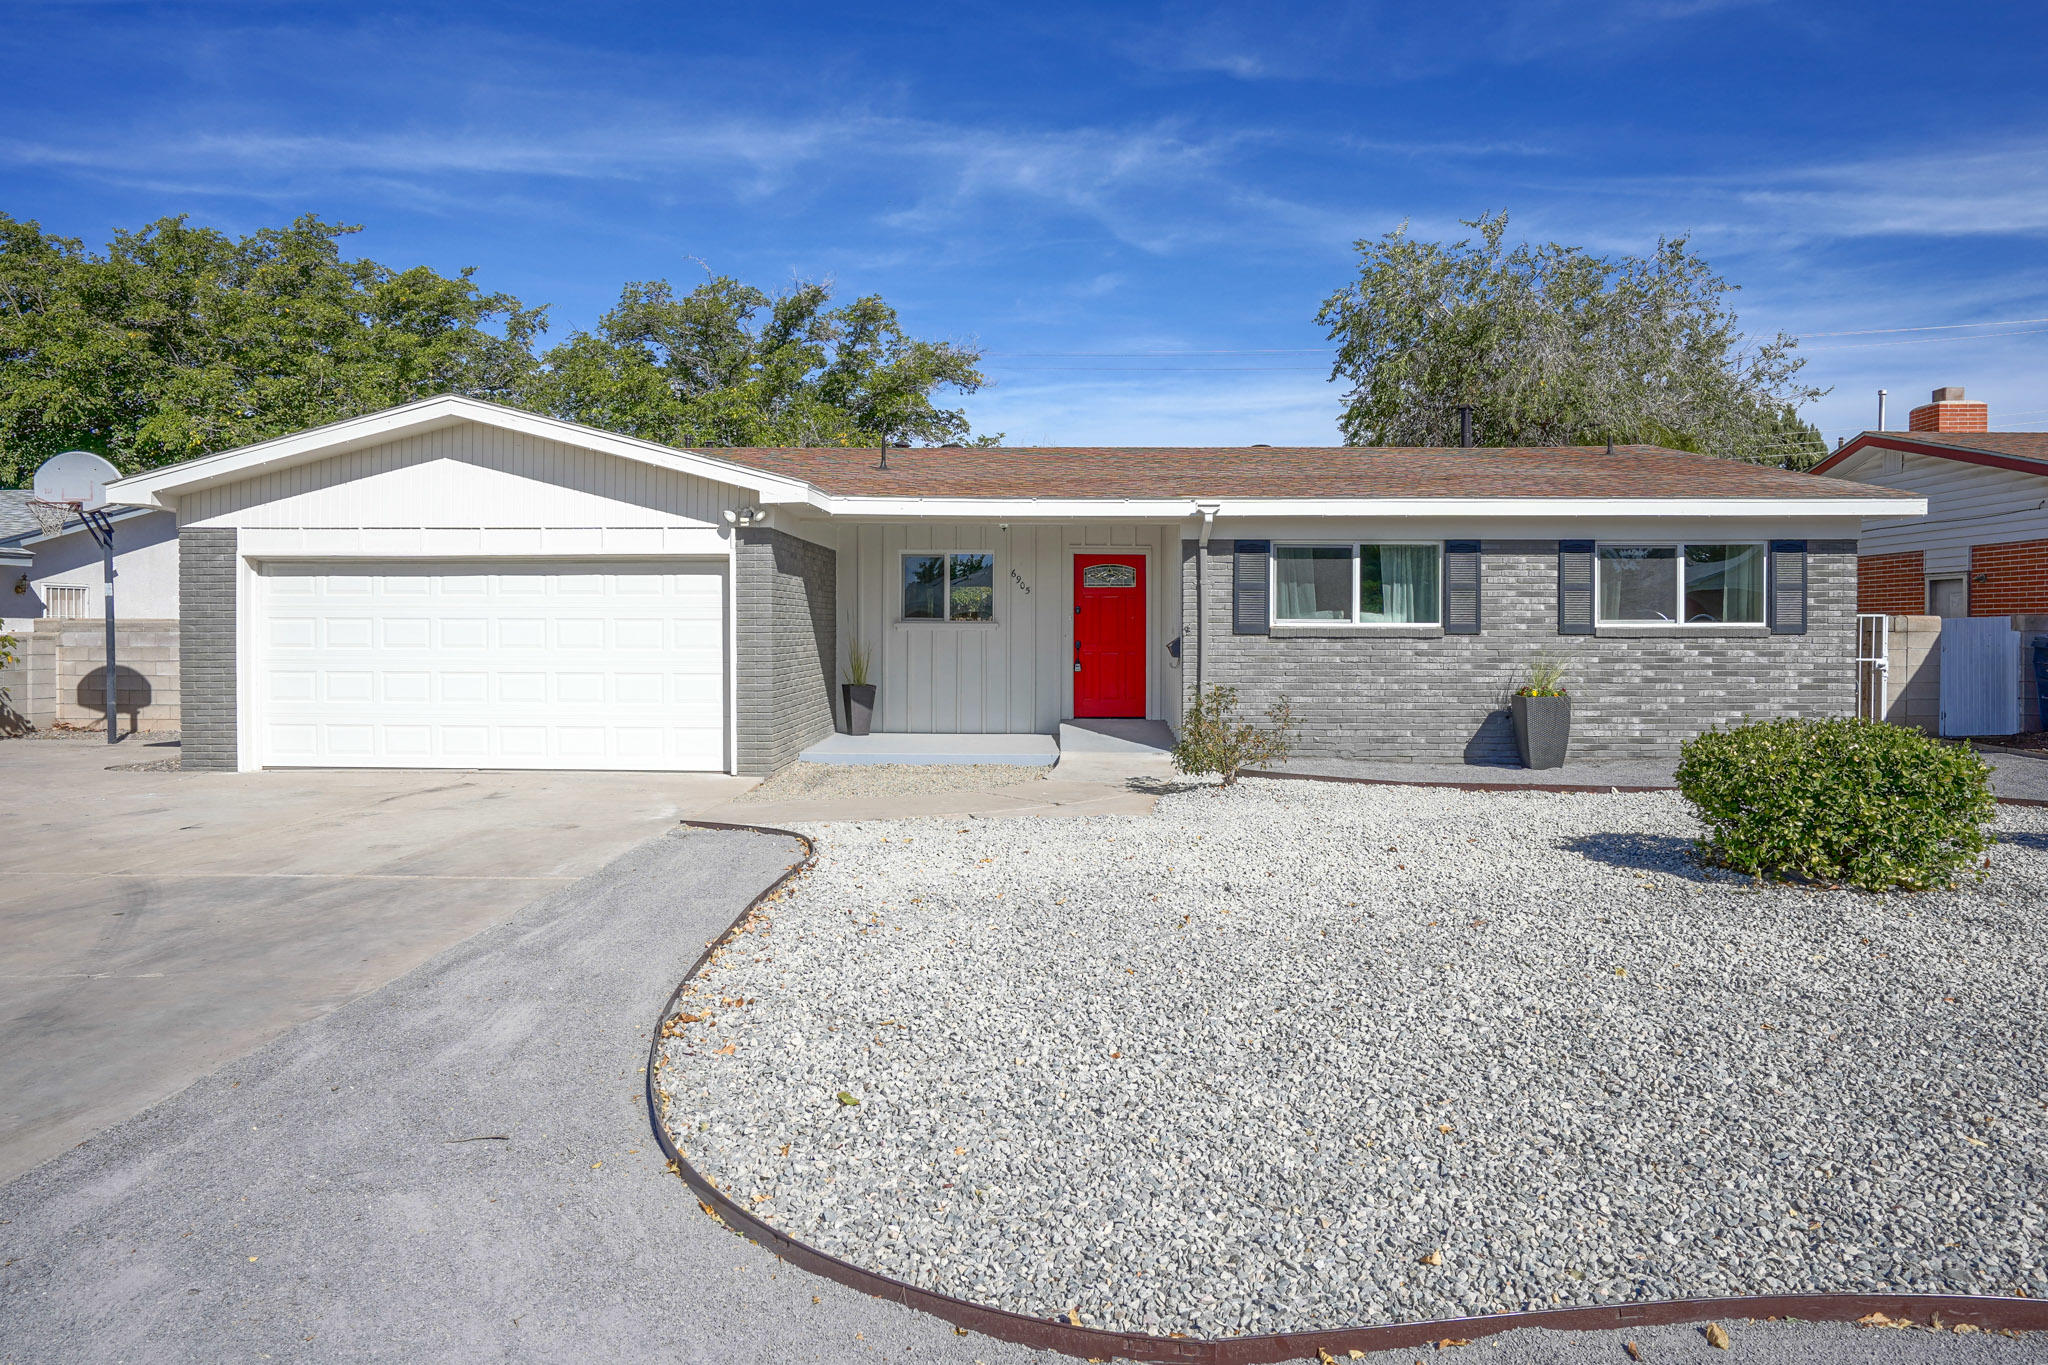 Check out this new and improved remodeled 4 bedroom/2 living room/open concept single-story with  new refrigerated air.  New cabinets, granite, SS appliances, luxury vinyl flooring (no carpet), remodeled from end-to-end. Large lot with side yard access and RV concrete pad with extra large 2 car garage and workshop.  Schedule your showing today to see this lovely one before it goes!